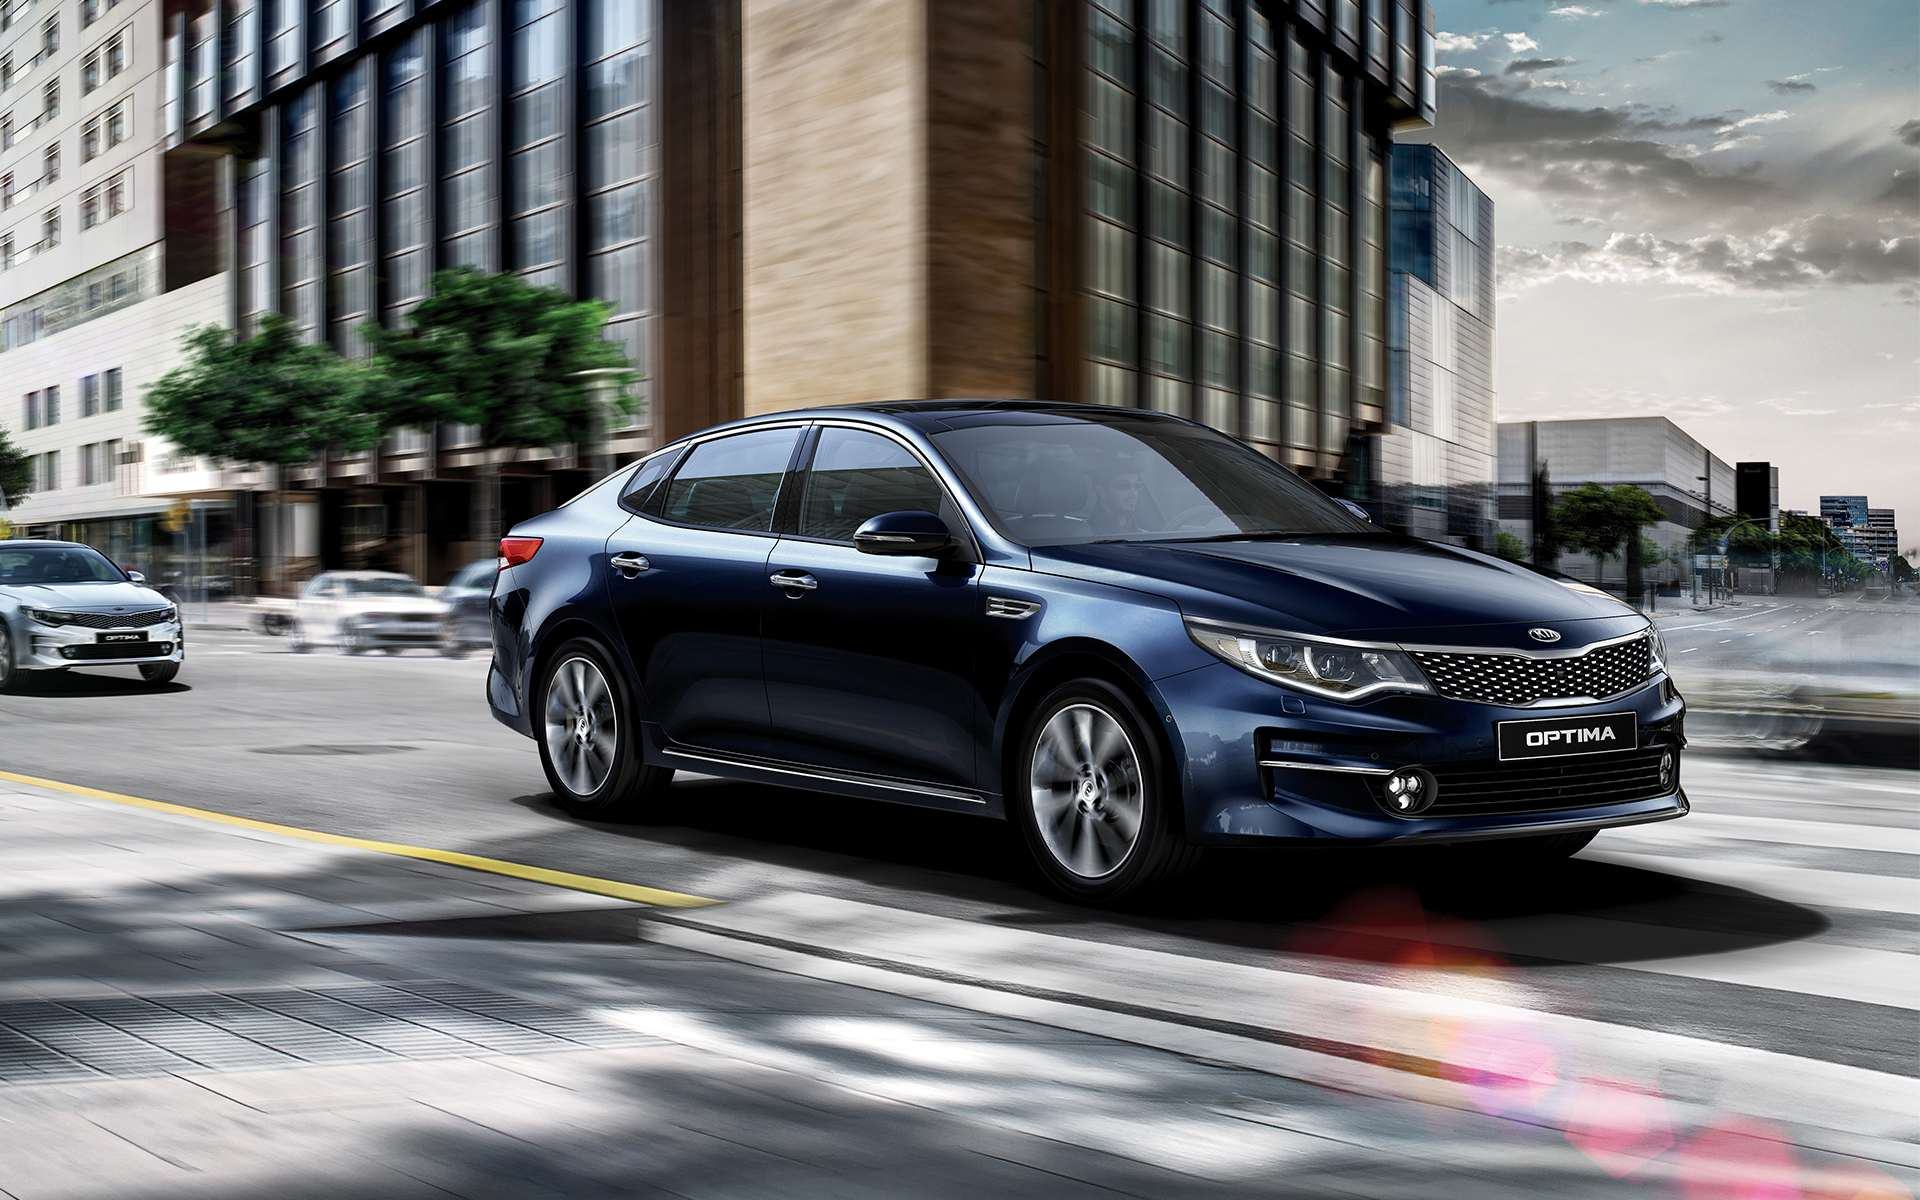 Kia Optima Design